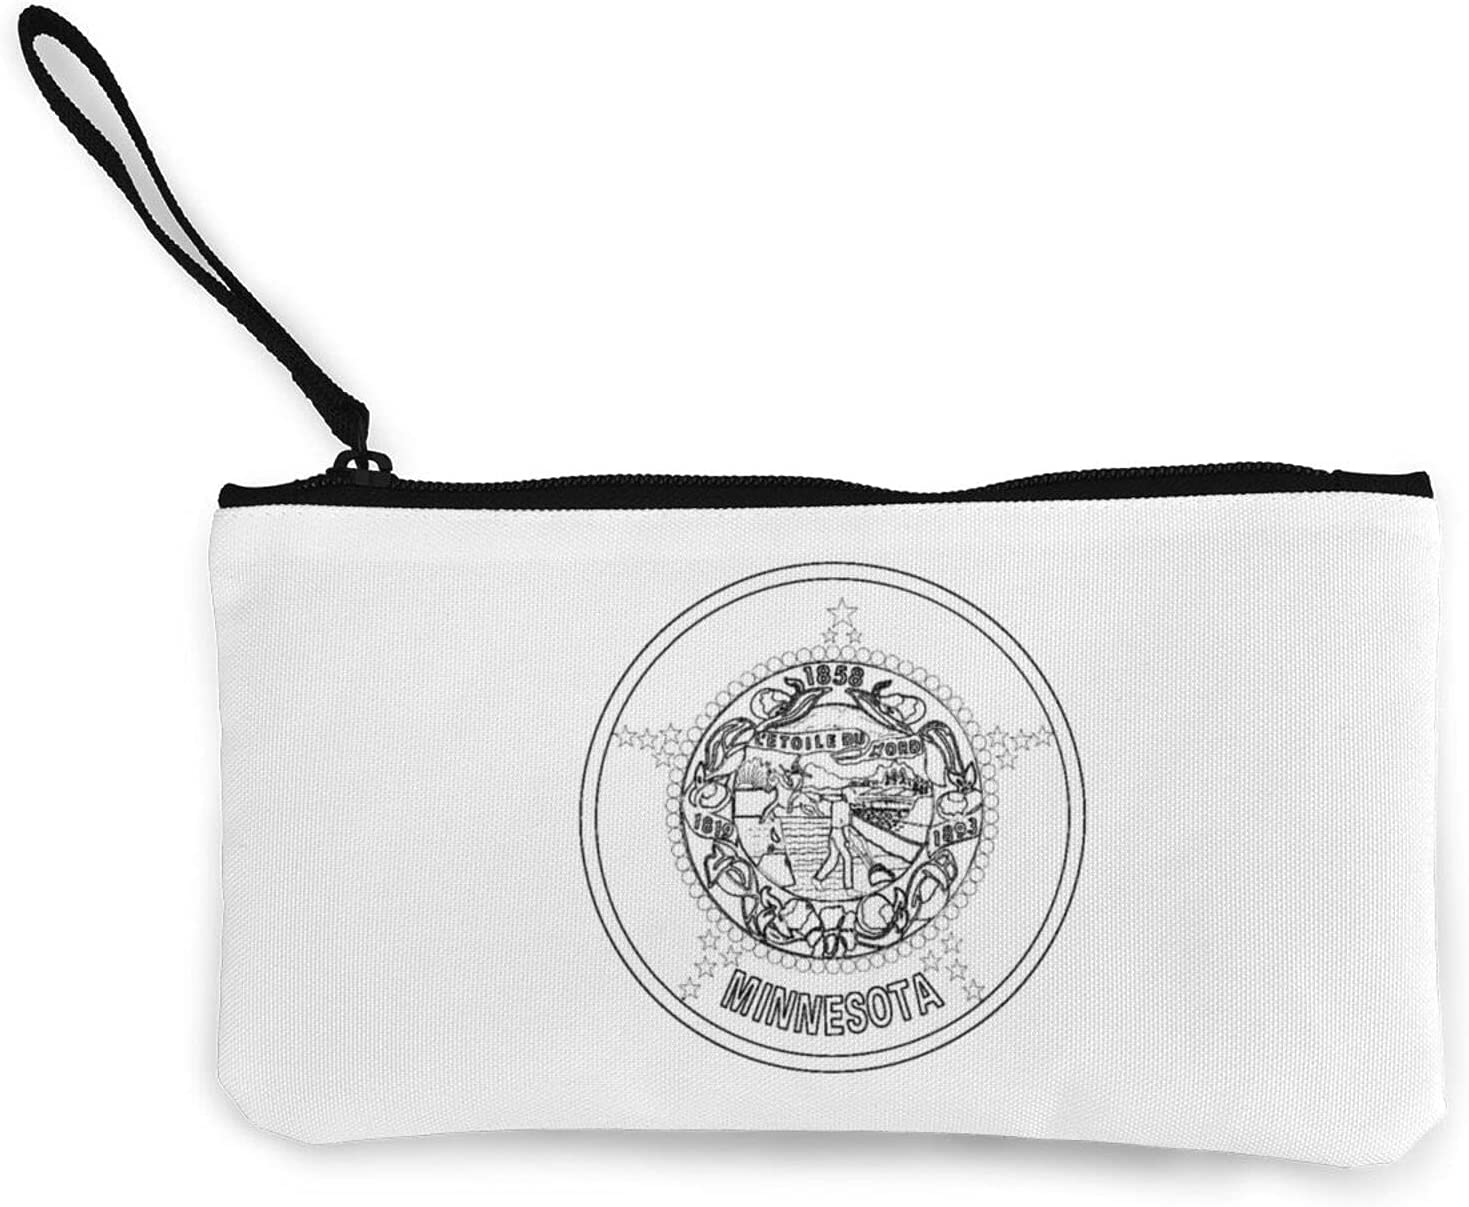 Flag Of Minnesota Multifunction Travel Toiletry Pouch Small Canvas Coin Wallet Bag Zipper